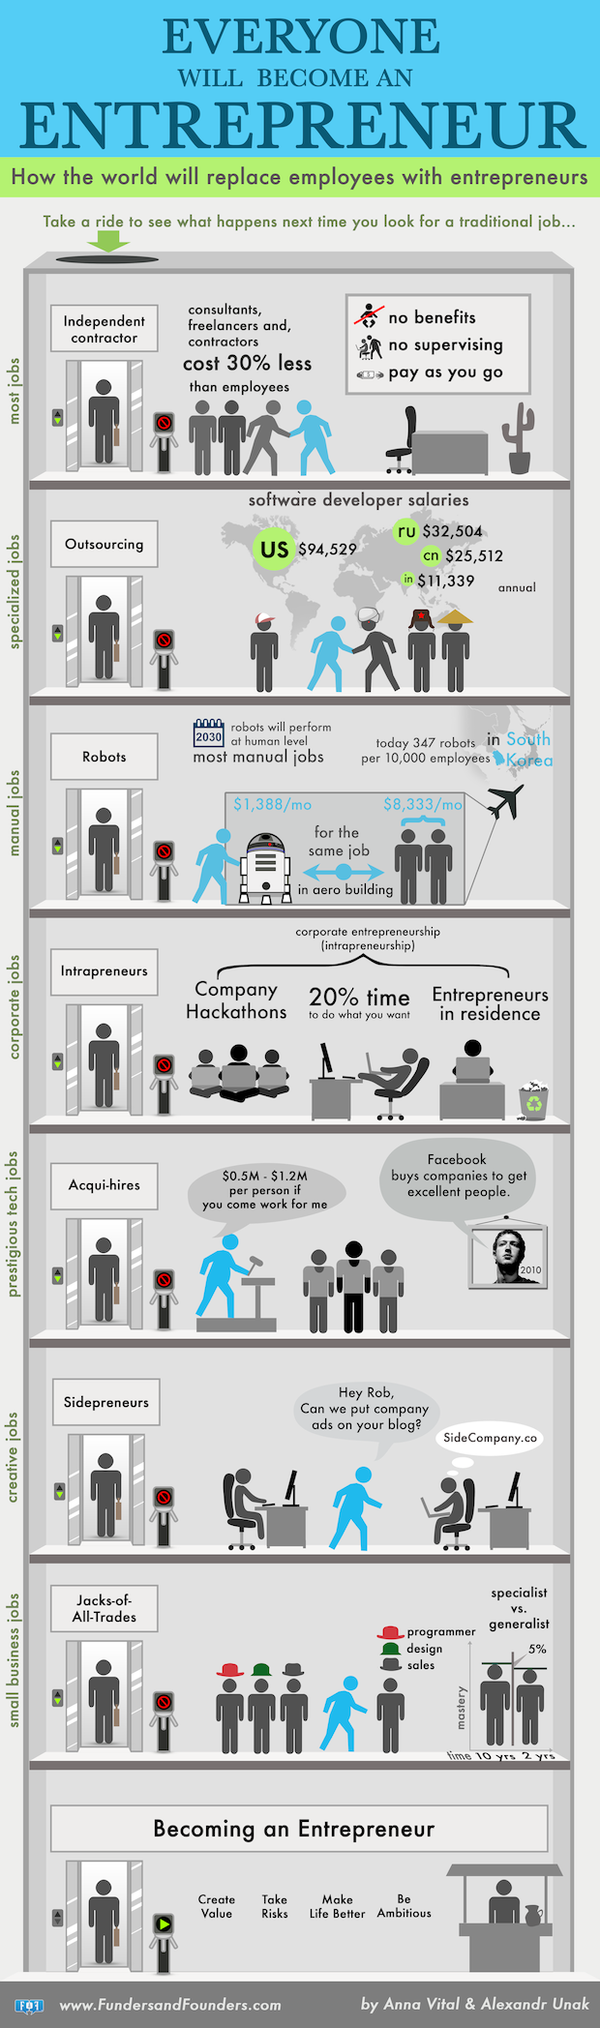 Everyone-an-entrepreneur-infographic